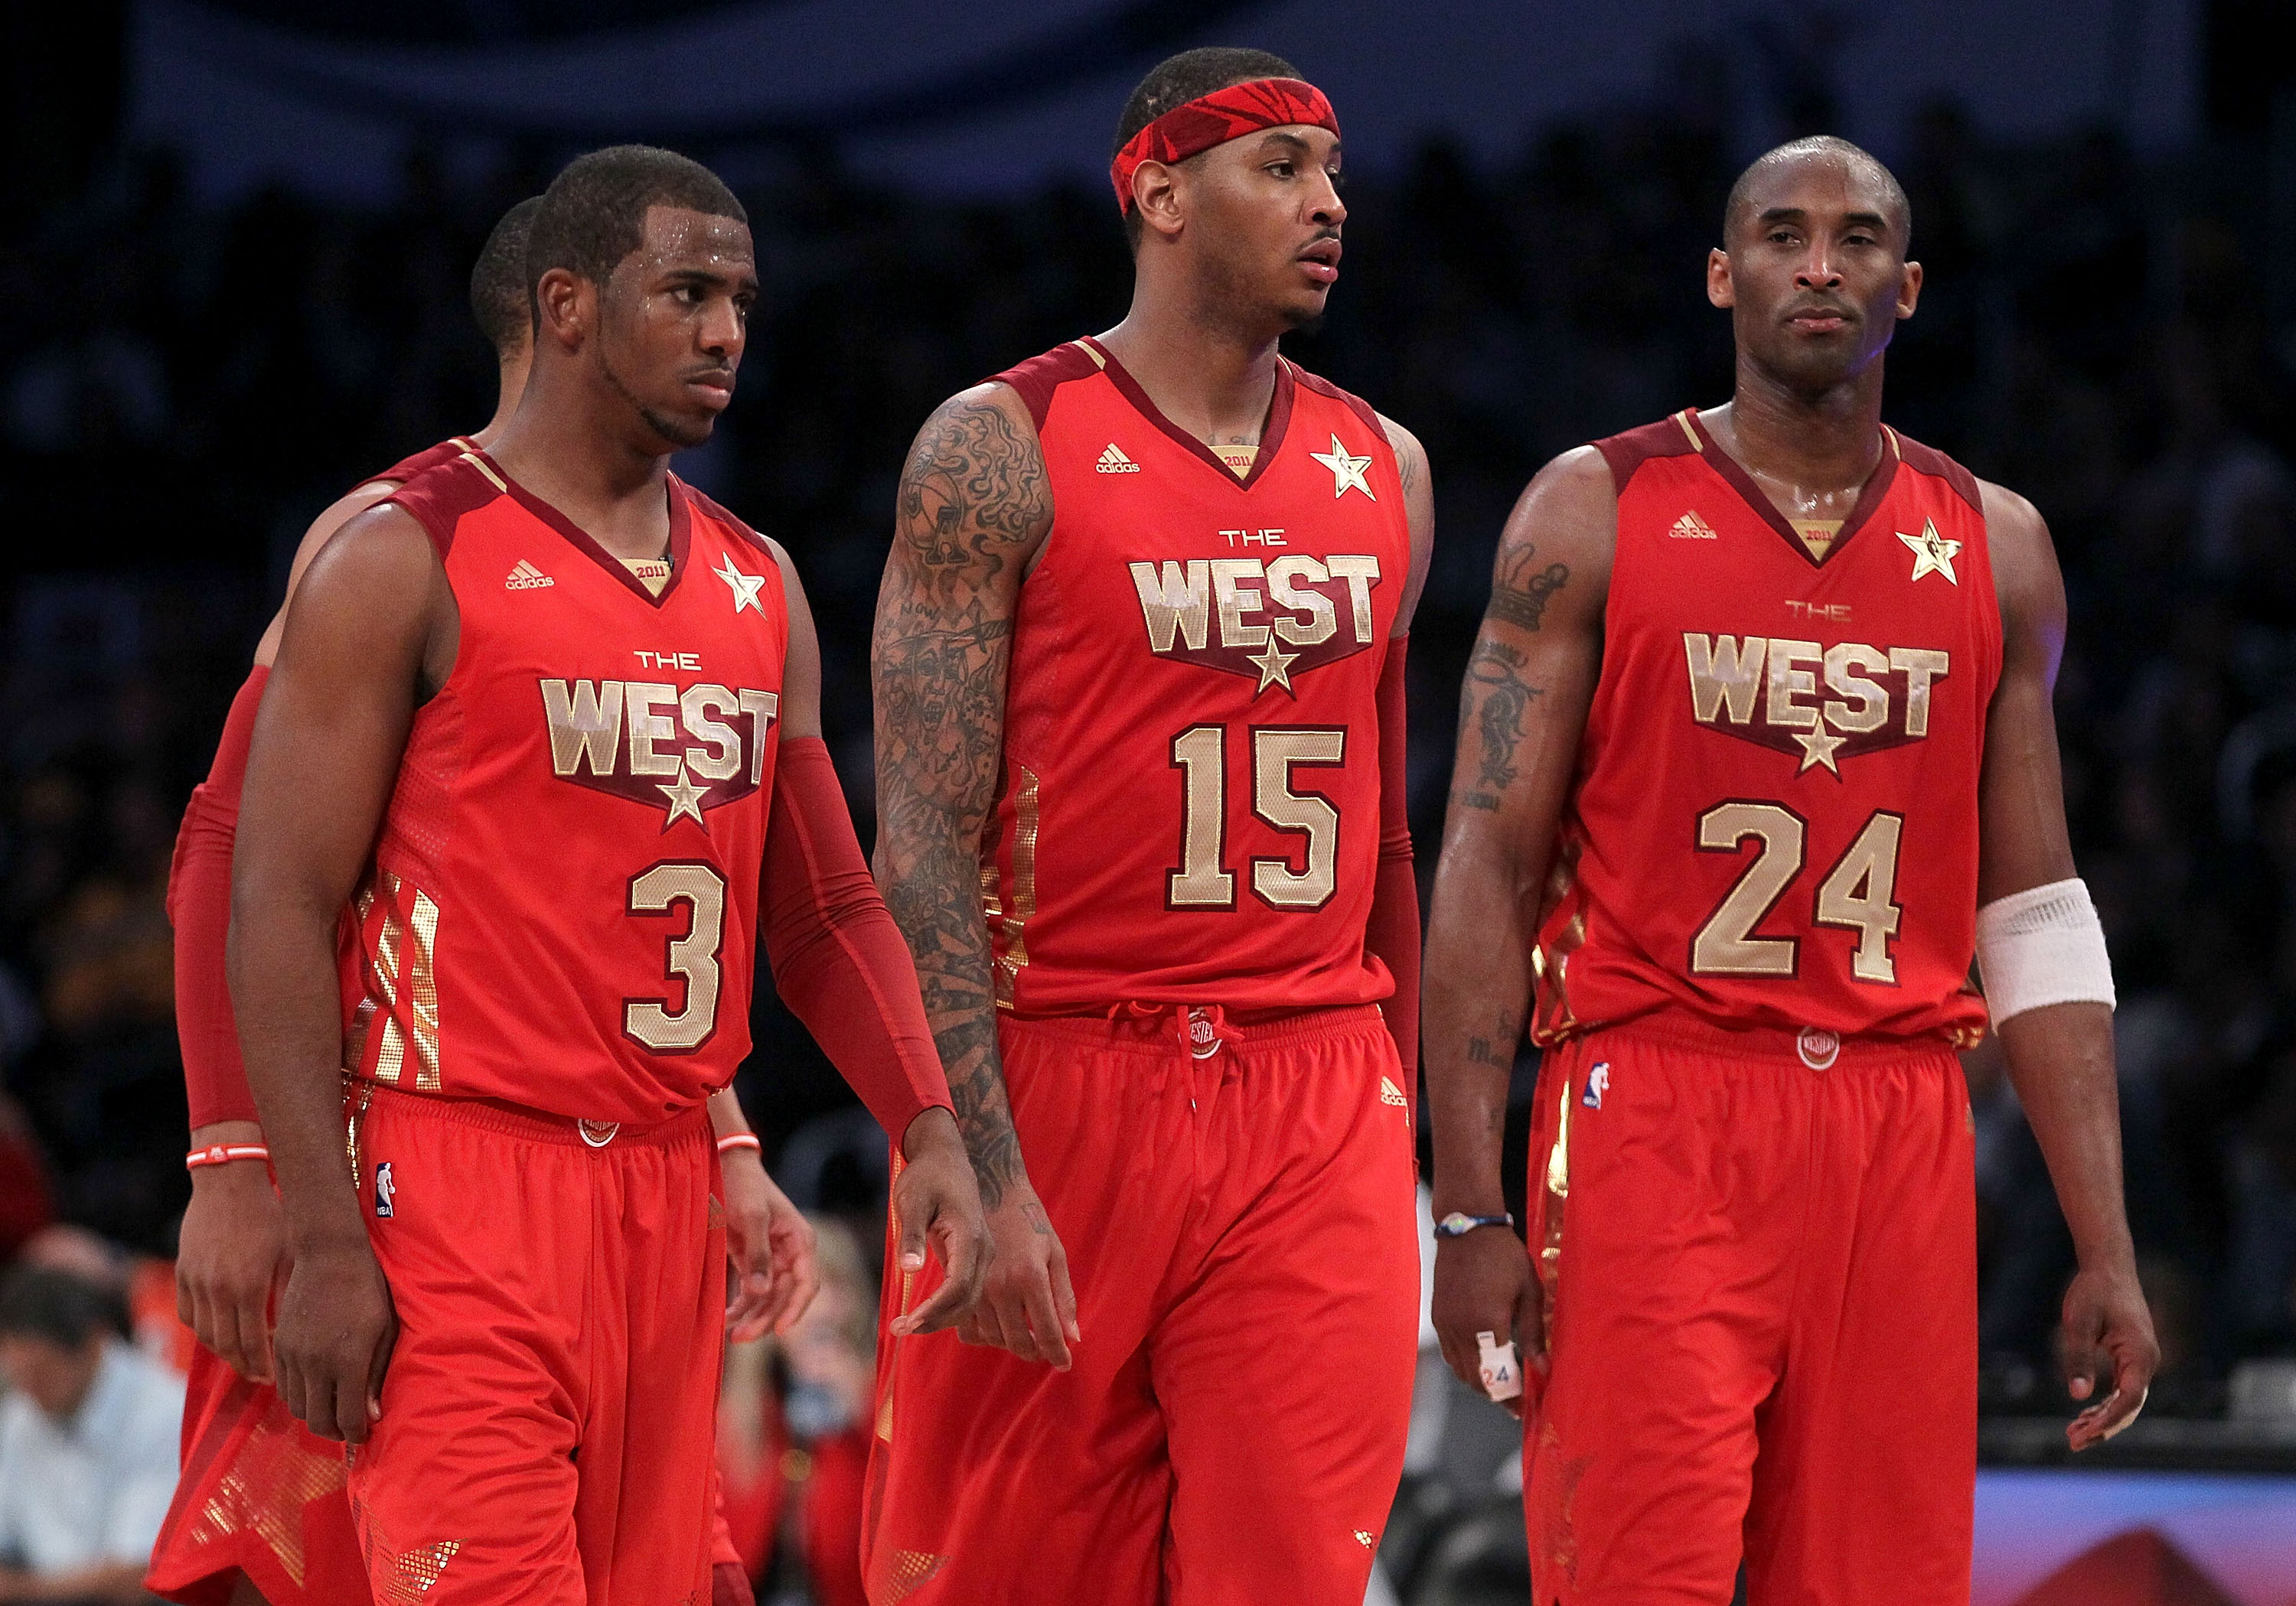 LOS ANGELES, CA - FEBRUARY 20:  Chris Paul #3 of the New Orleans Hornets and the Western Conference, Carmelo Anthony #15 of the Denver Nuggets and the Western Conference and Kobe Bryant #24 of the Los Angeles Lakers and the Western Conference on the floor